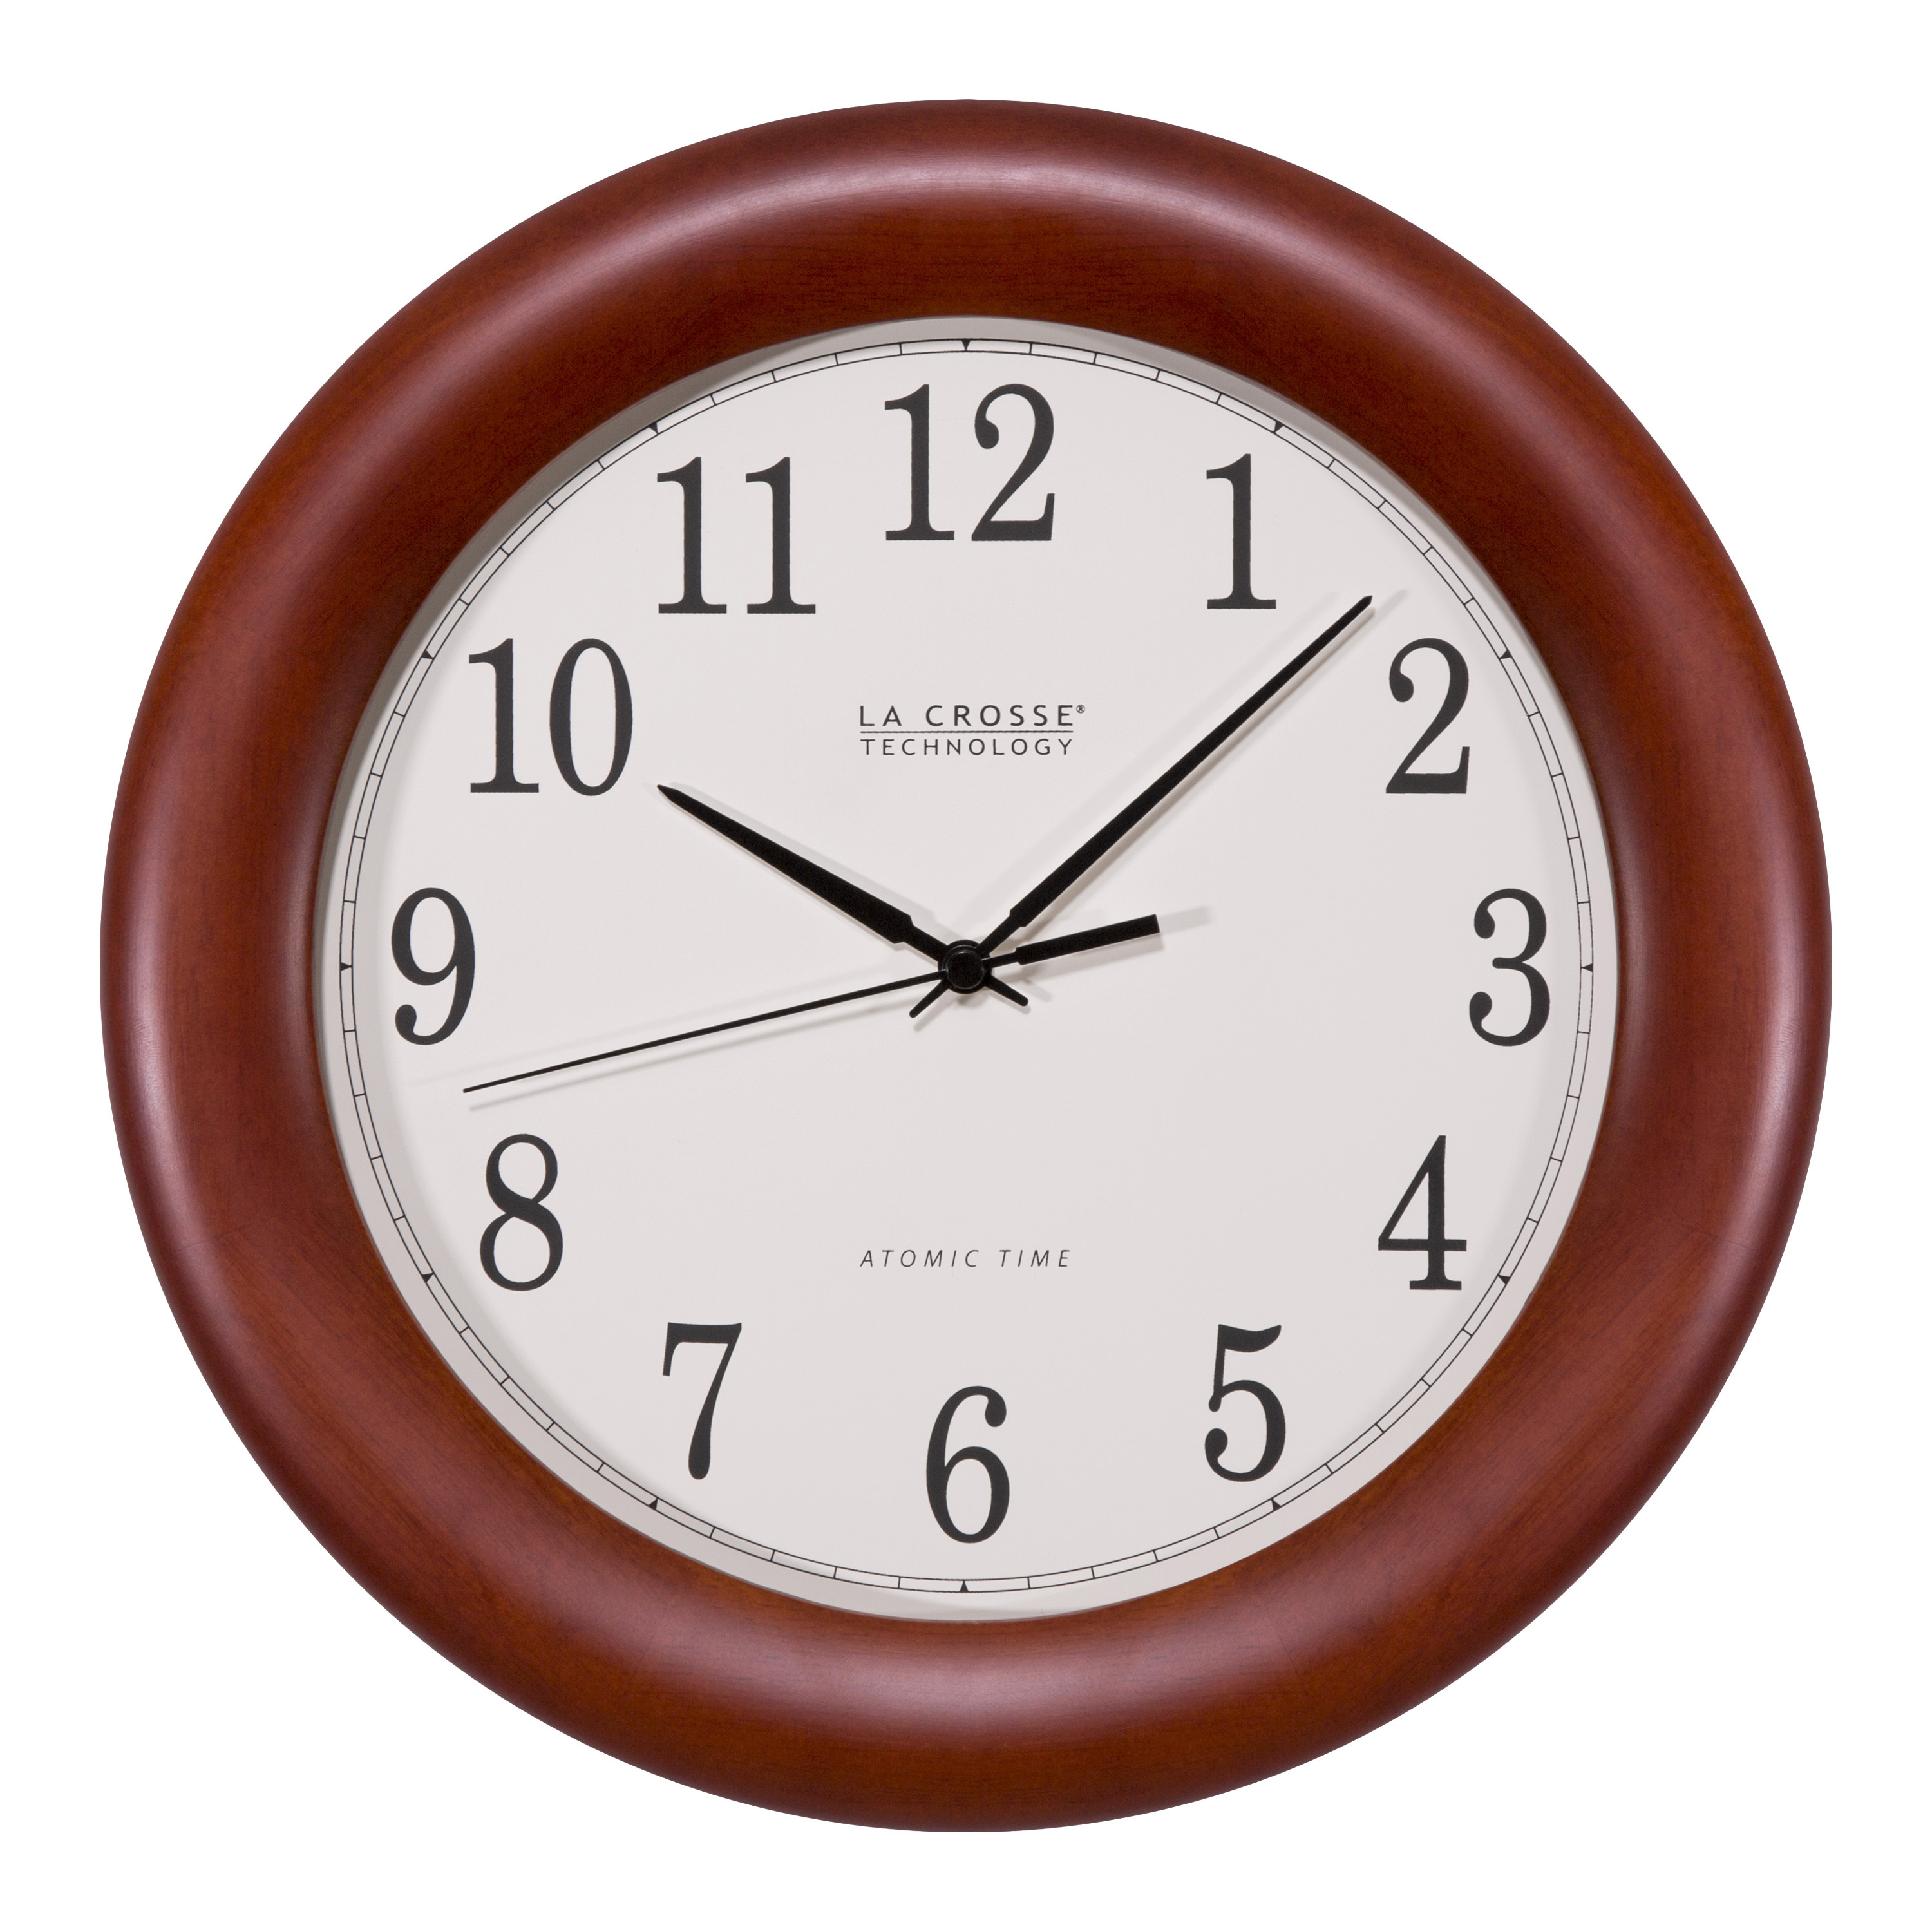 La Crosse Technology Ltd. La Crosse Technology 12 Cherry Wood Atomic Analog Clock, Red